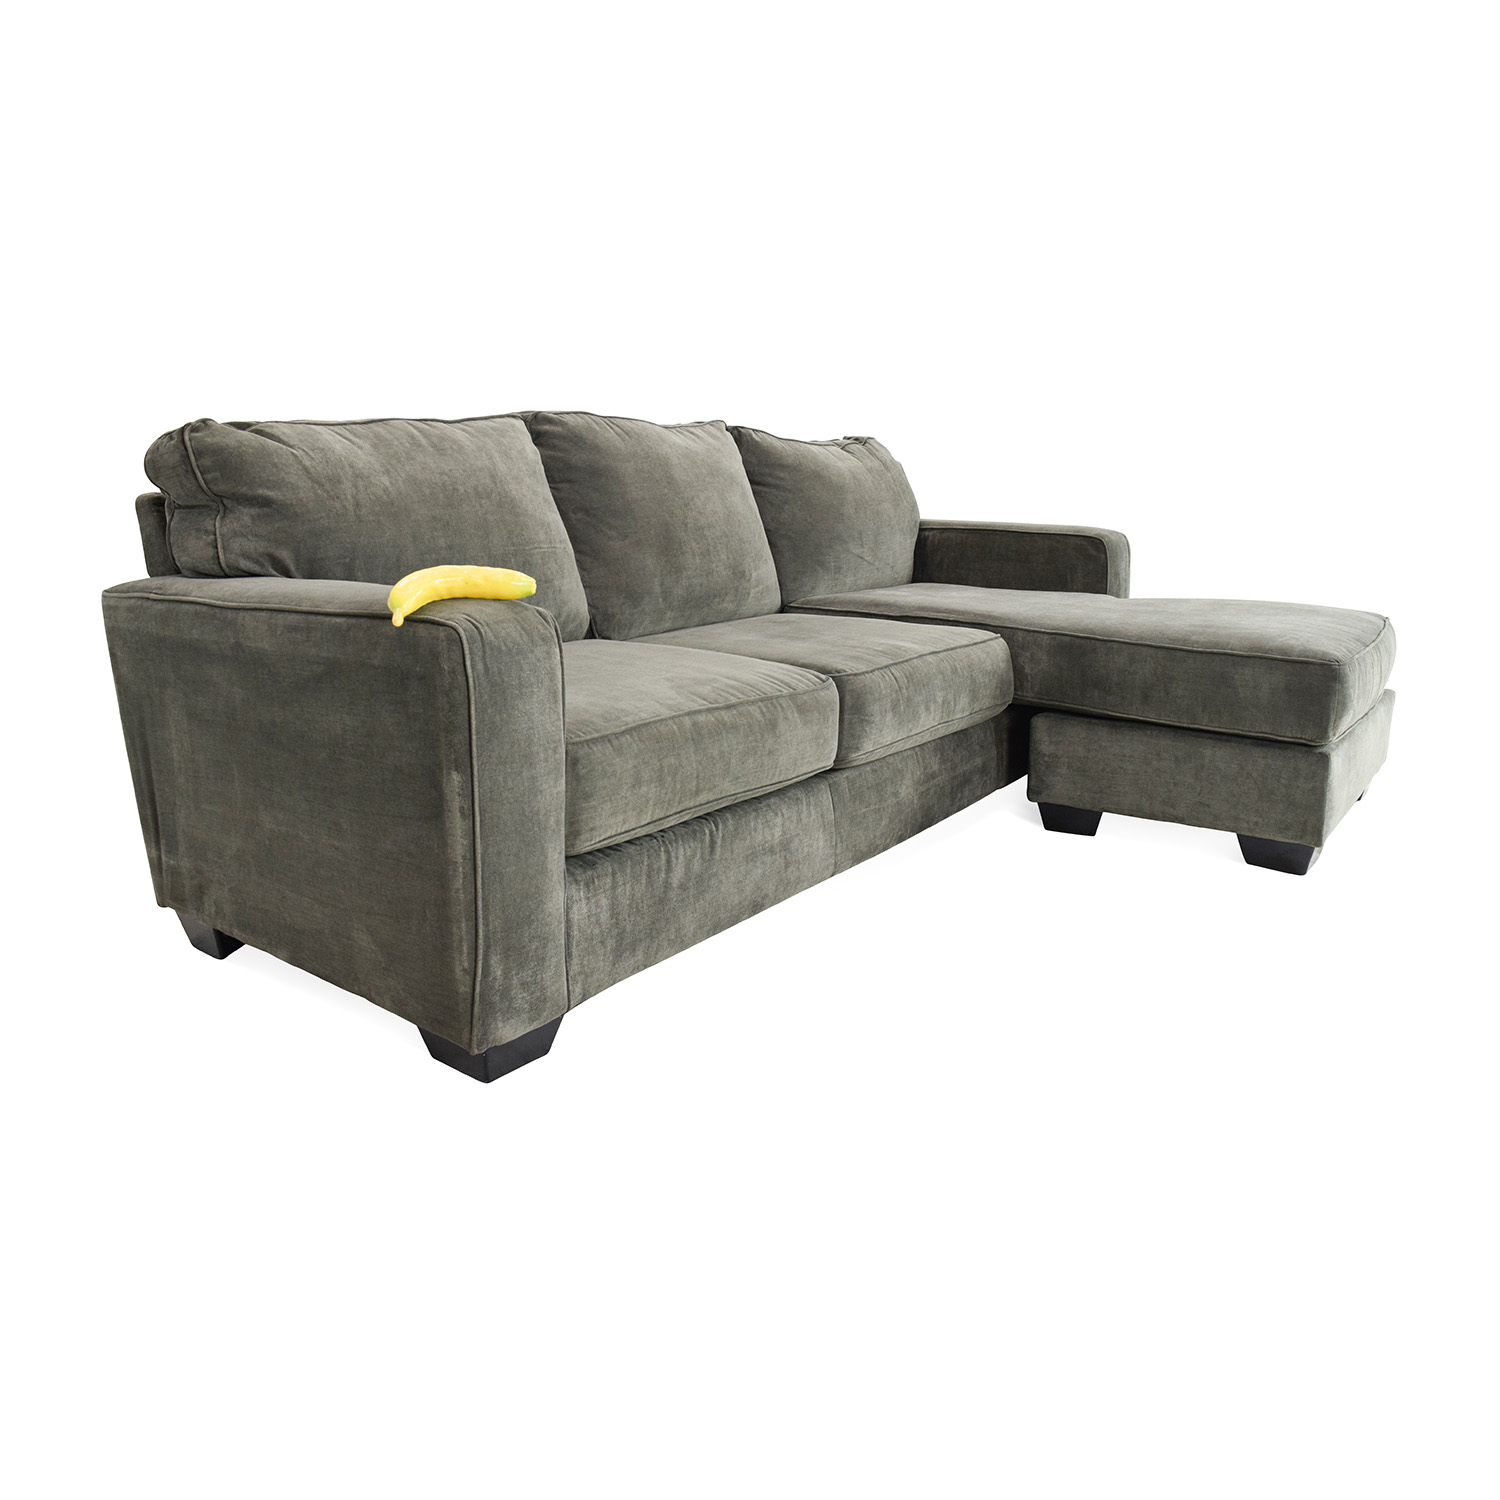 54% OFF - Jennifer Furniture Jennifer Convertibles Sectional Sofa / Sofas